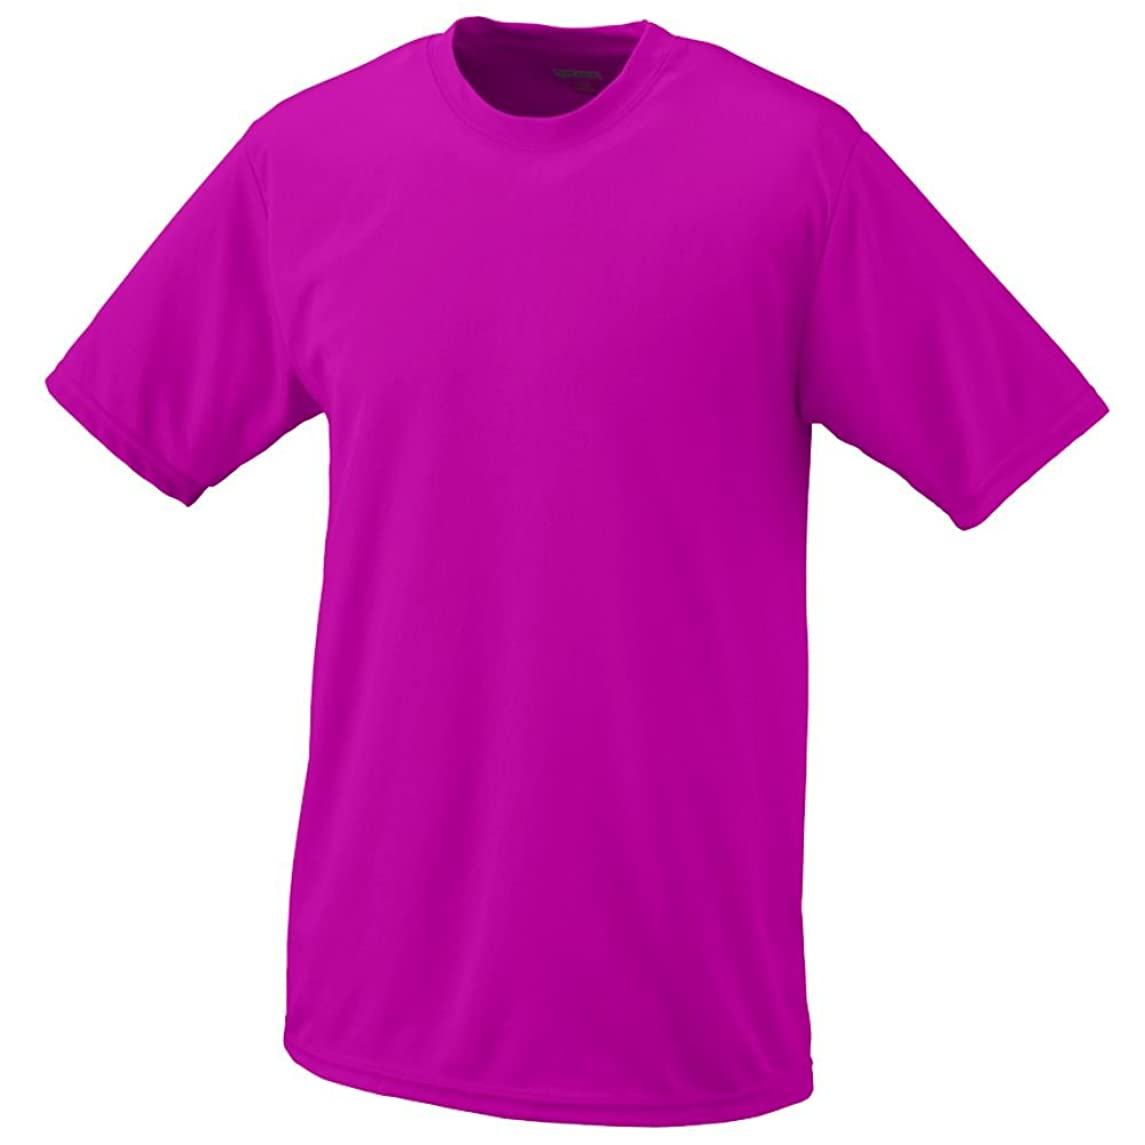 Augusta Sportswear Women's Wicking T-Shirt